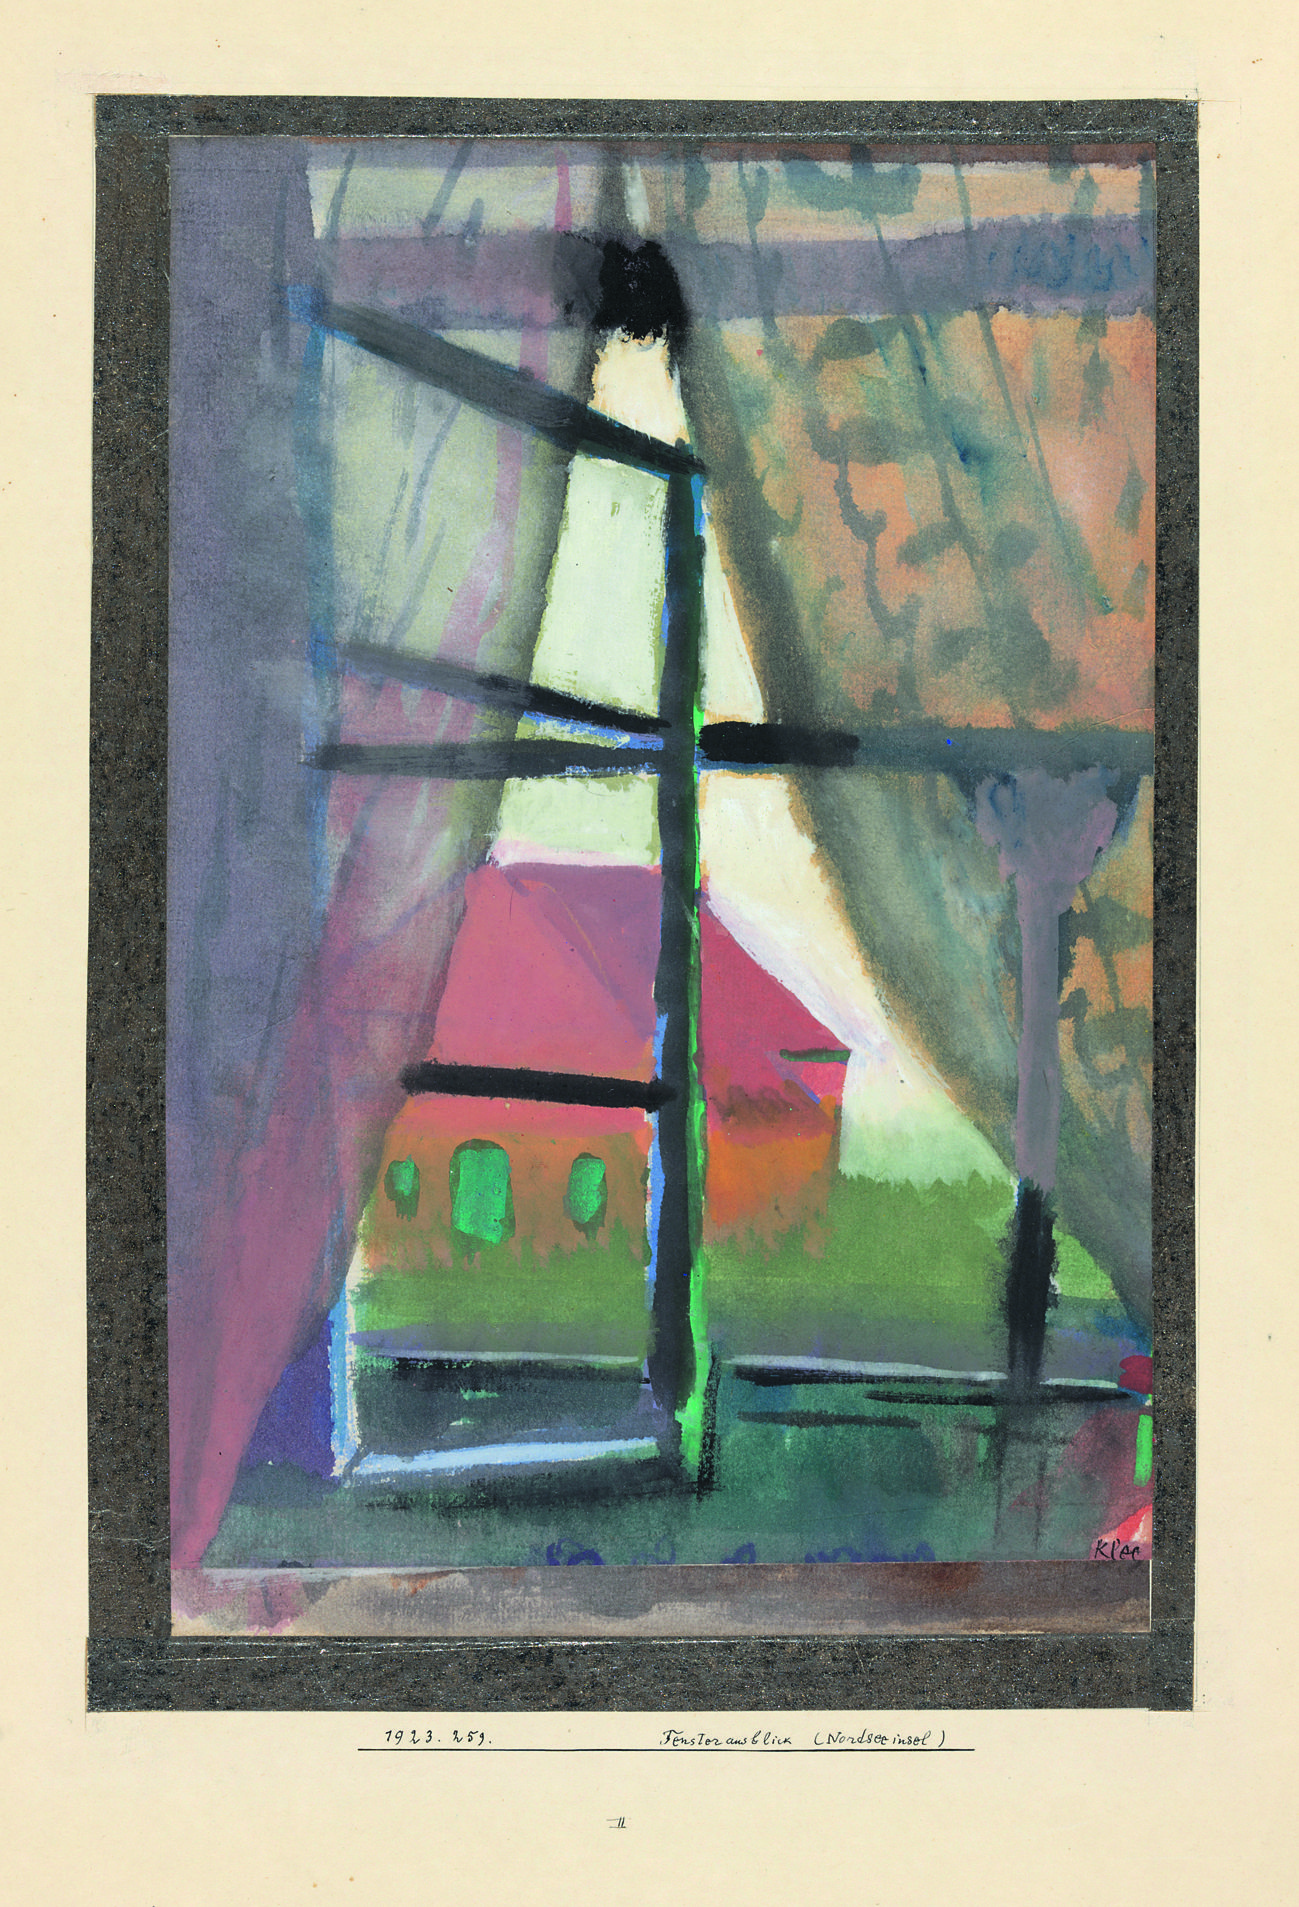 Fensterausblick Nordseeinsel Les Arts Paul Klee Inspiration Art